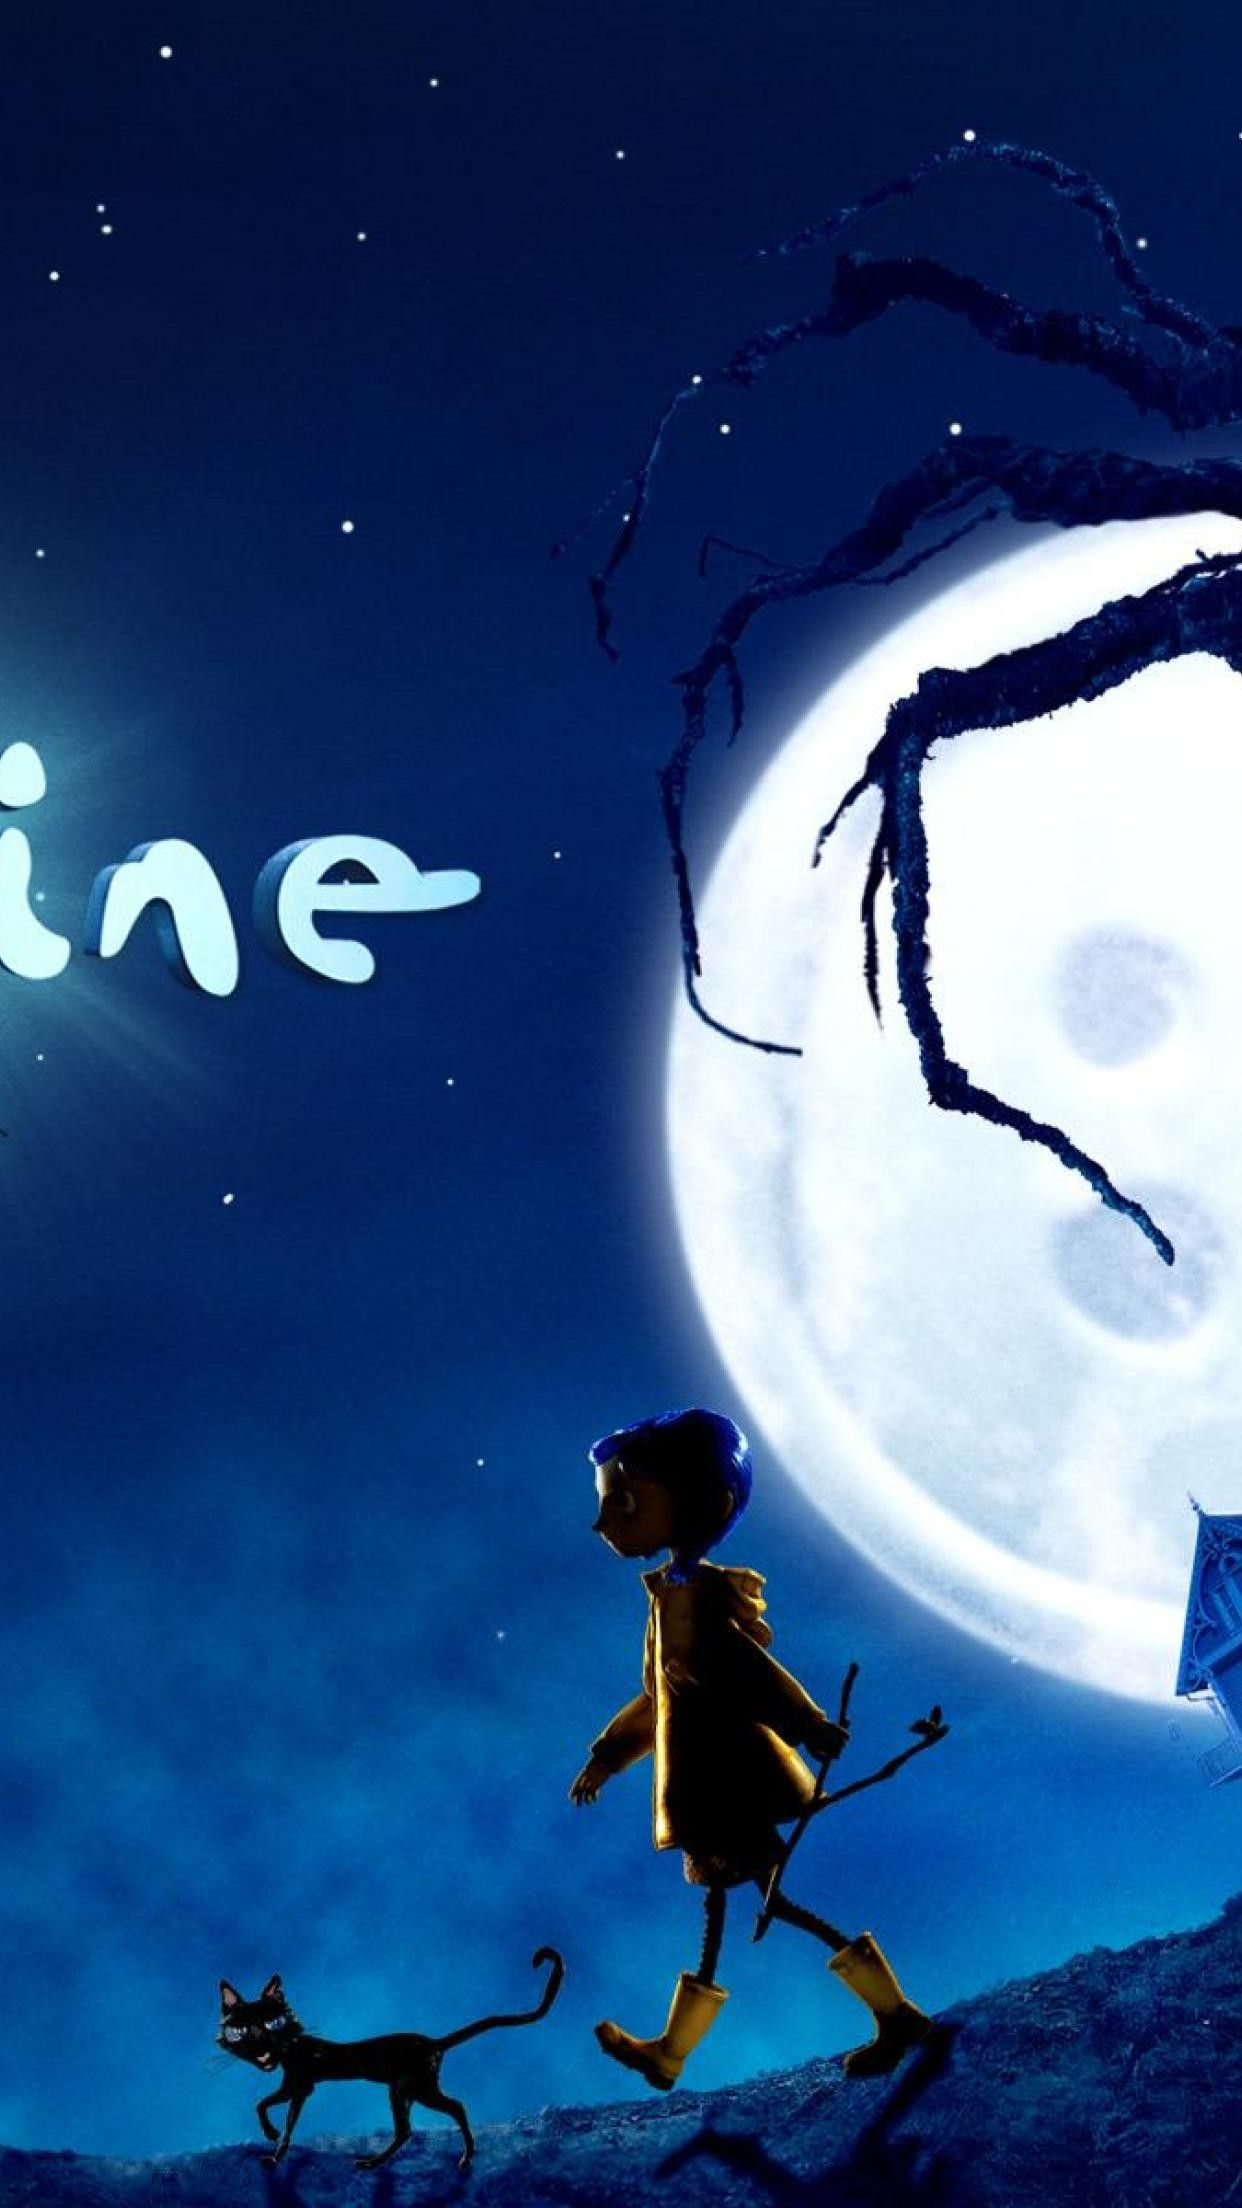 Coraline Wallpapers Top Free Coraline Backgrounds Wallpaperaccess